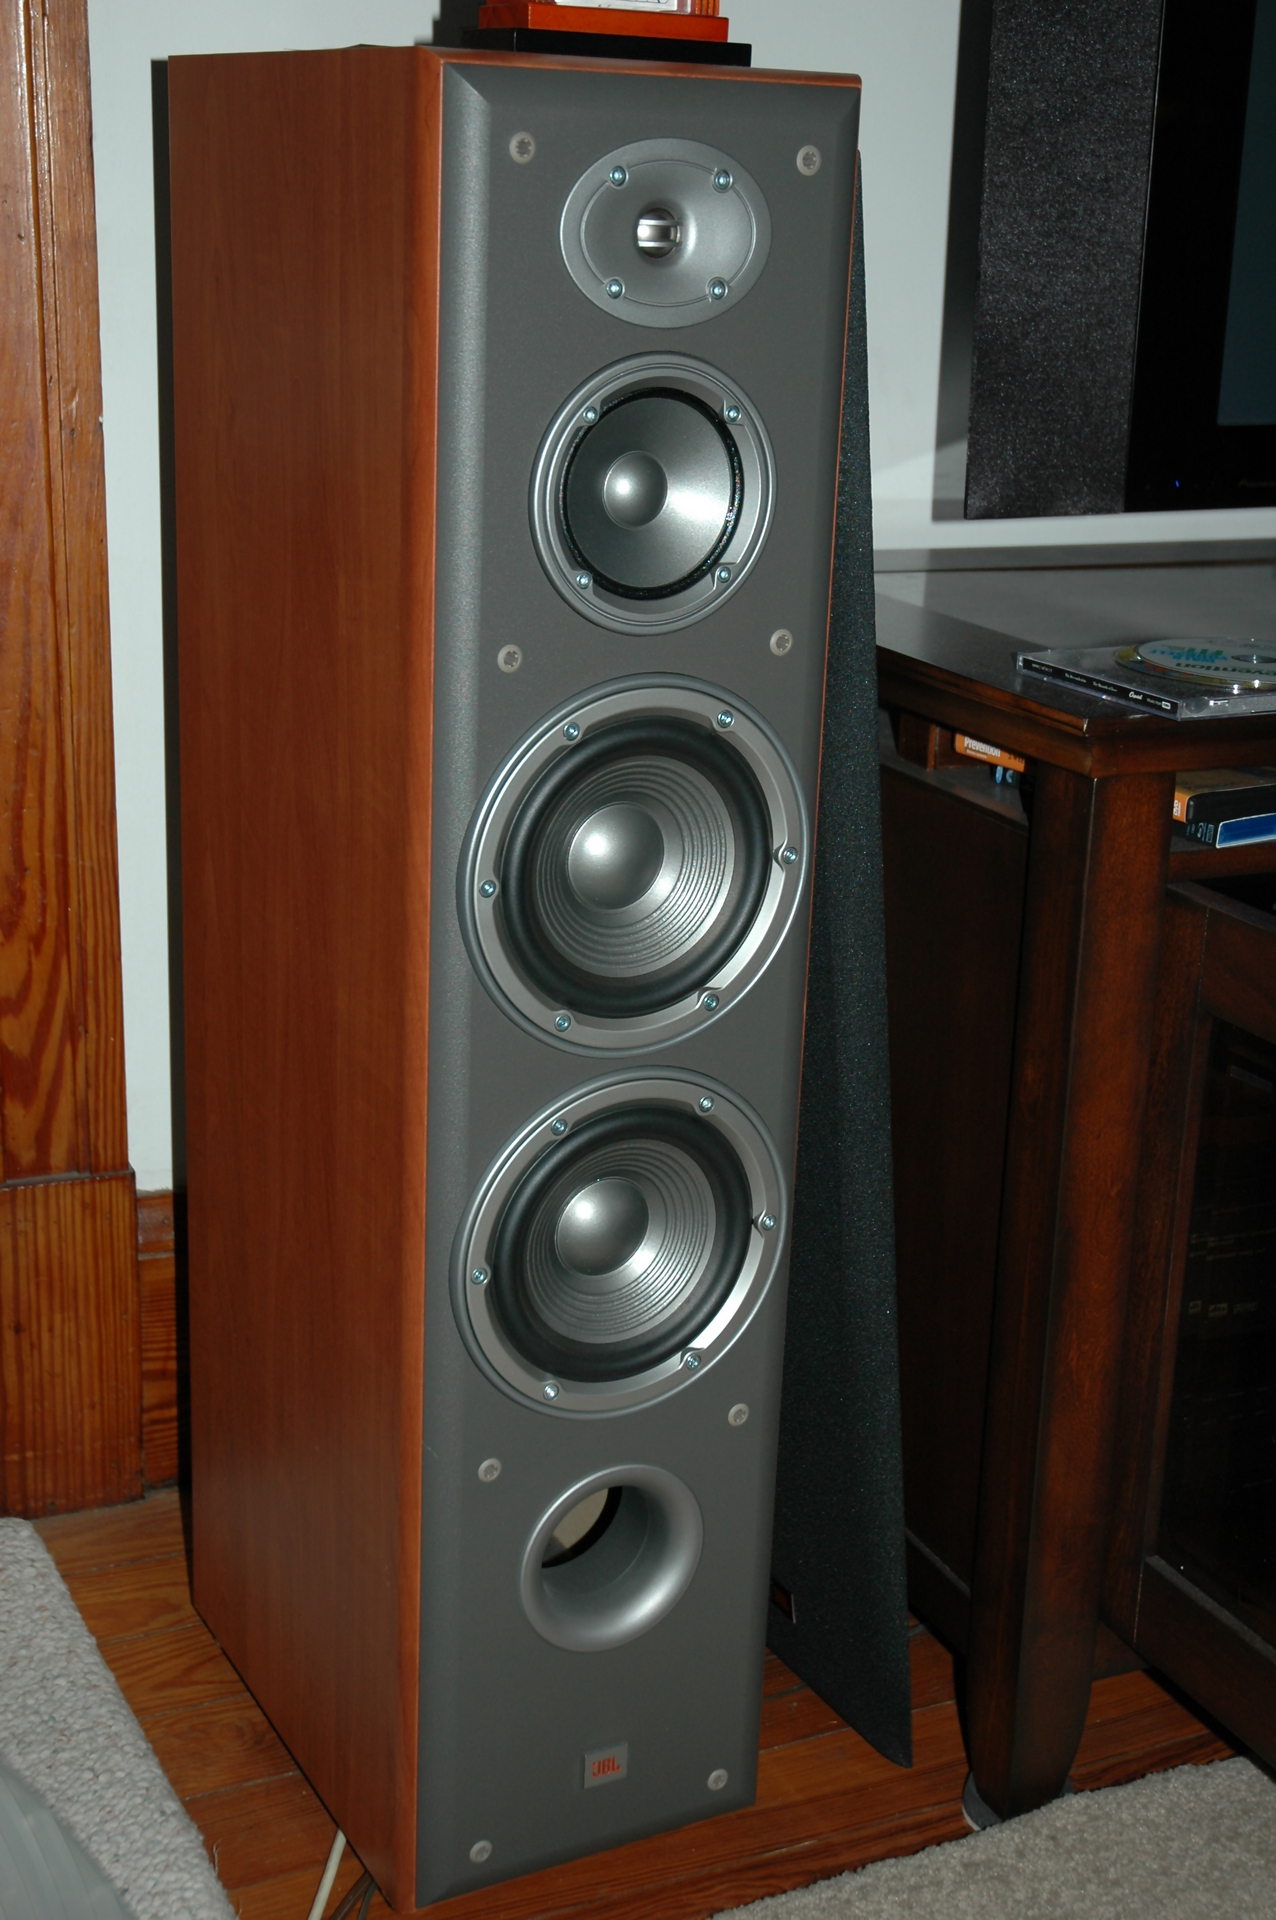 Fonkelnieuw Clemulus' Home Theater Gallery - Home Theater Photos (10 photos) WU-81